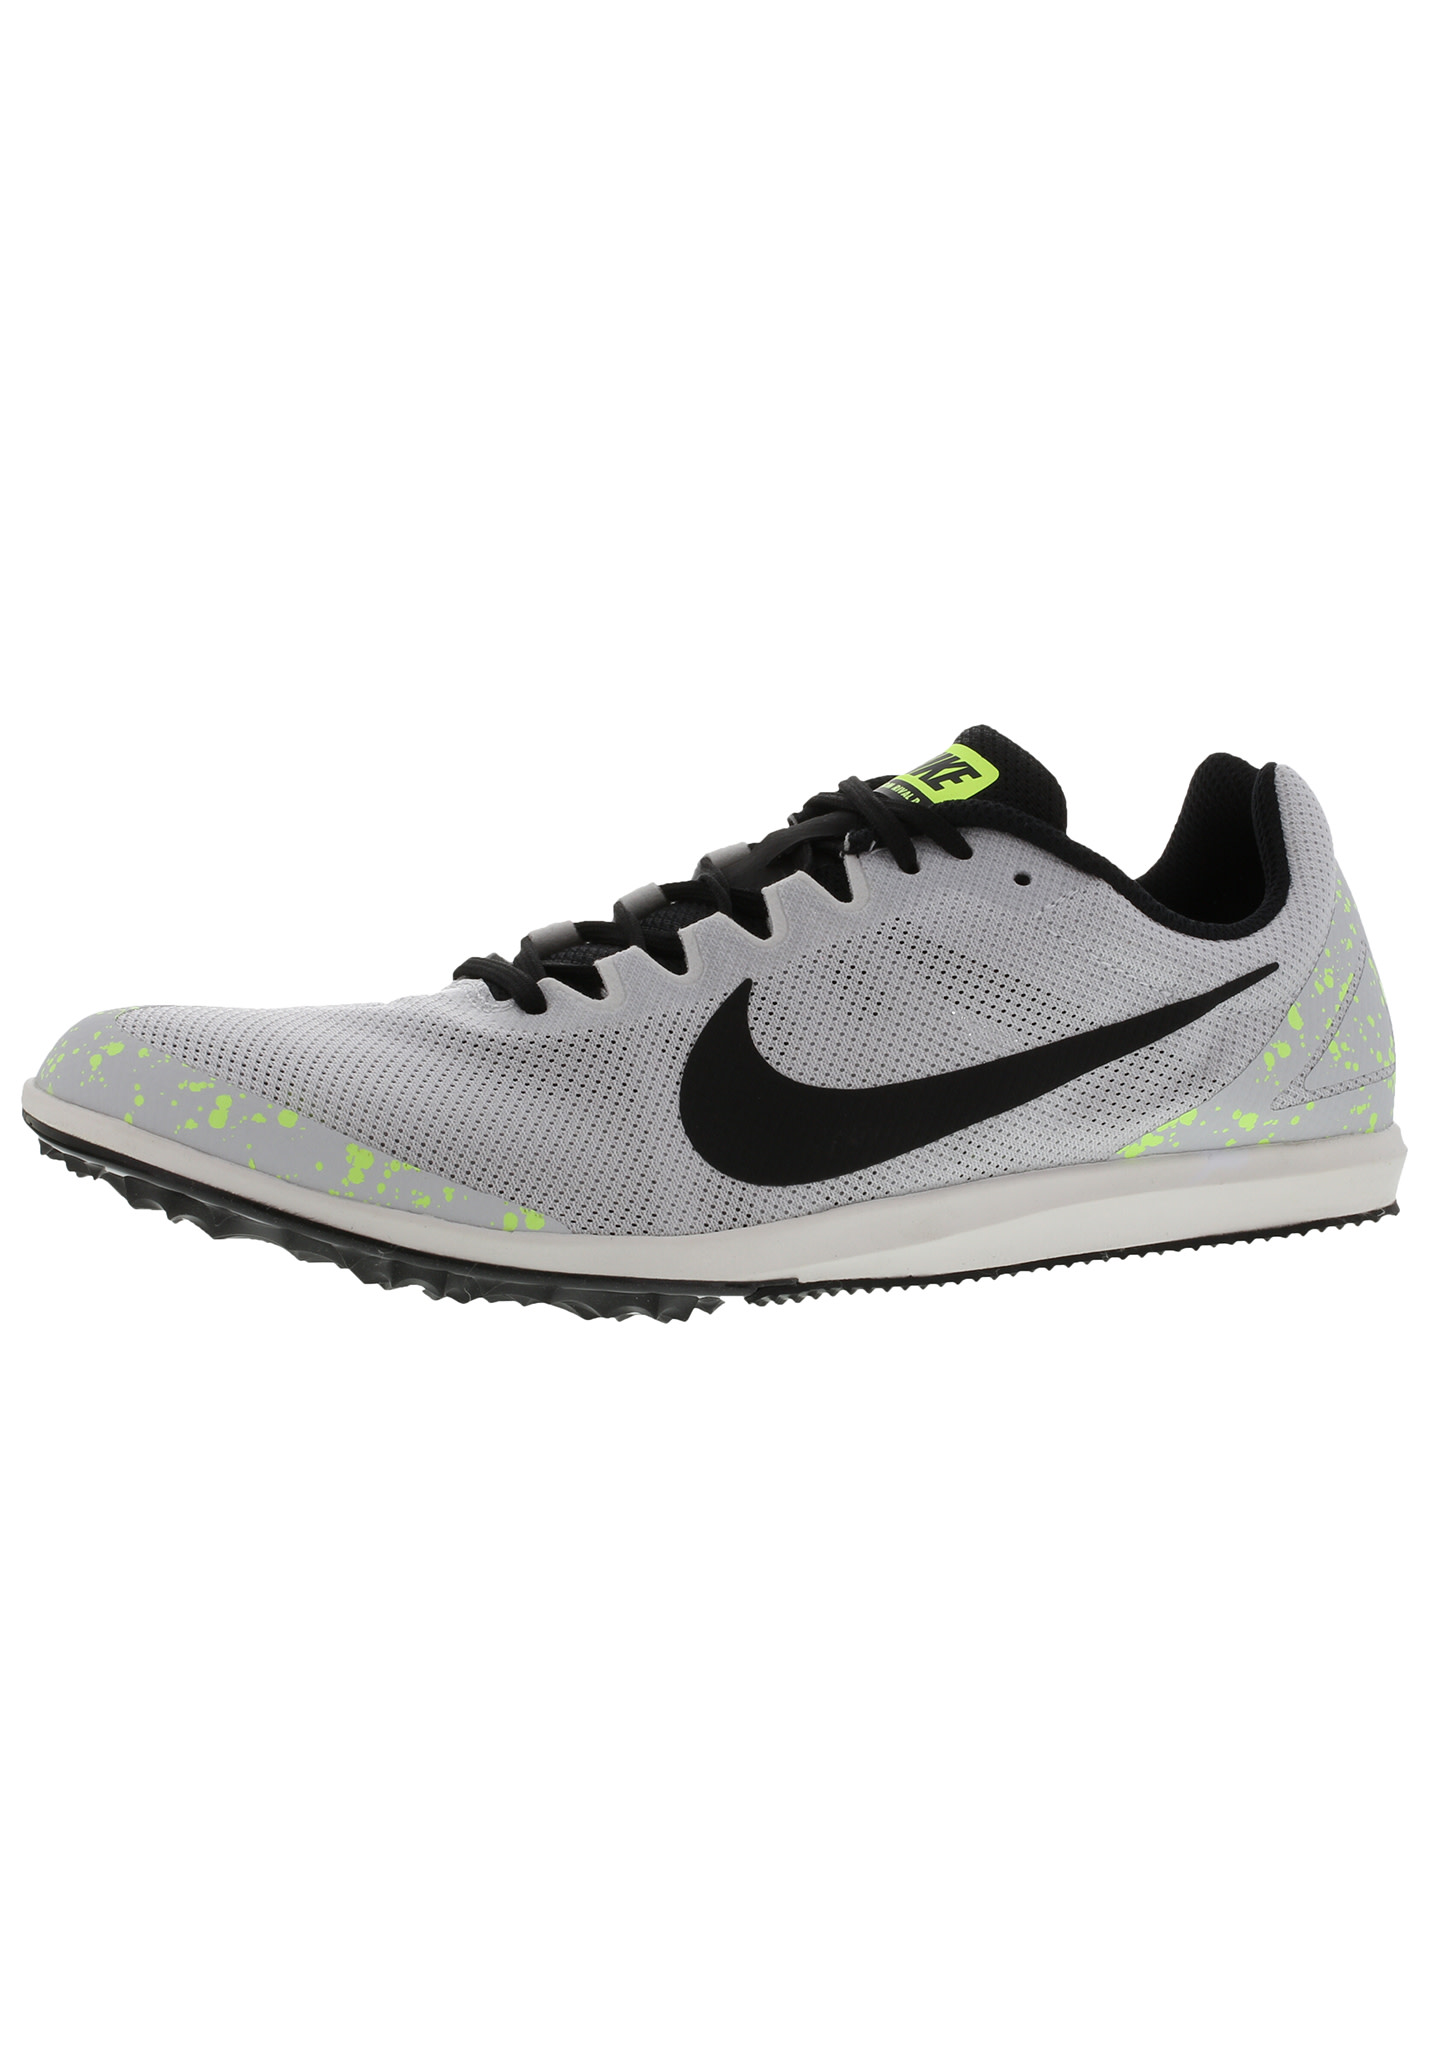 73f33727d52 Nike Zoom Rival D 10 - Spikes - Grey